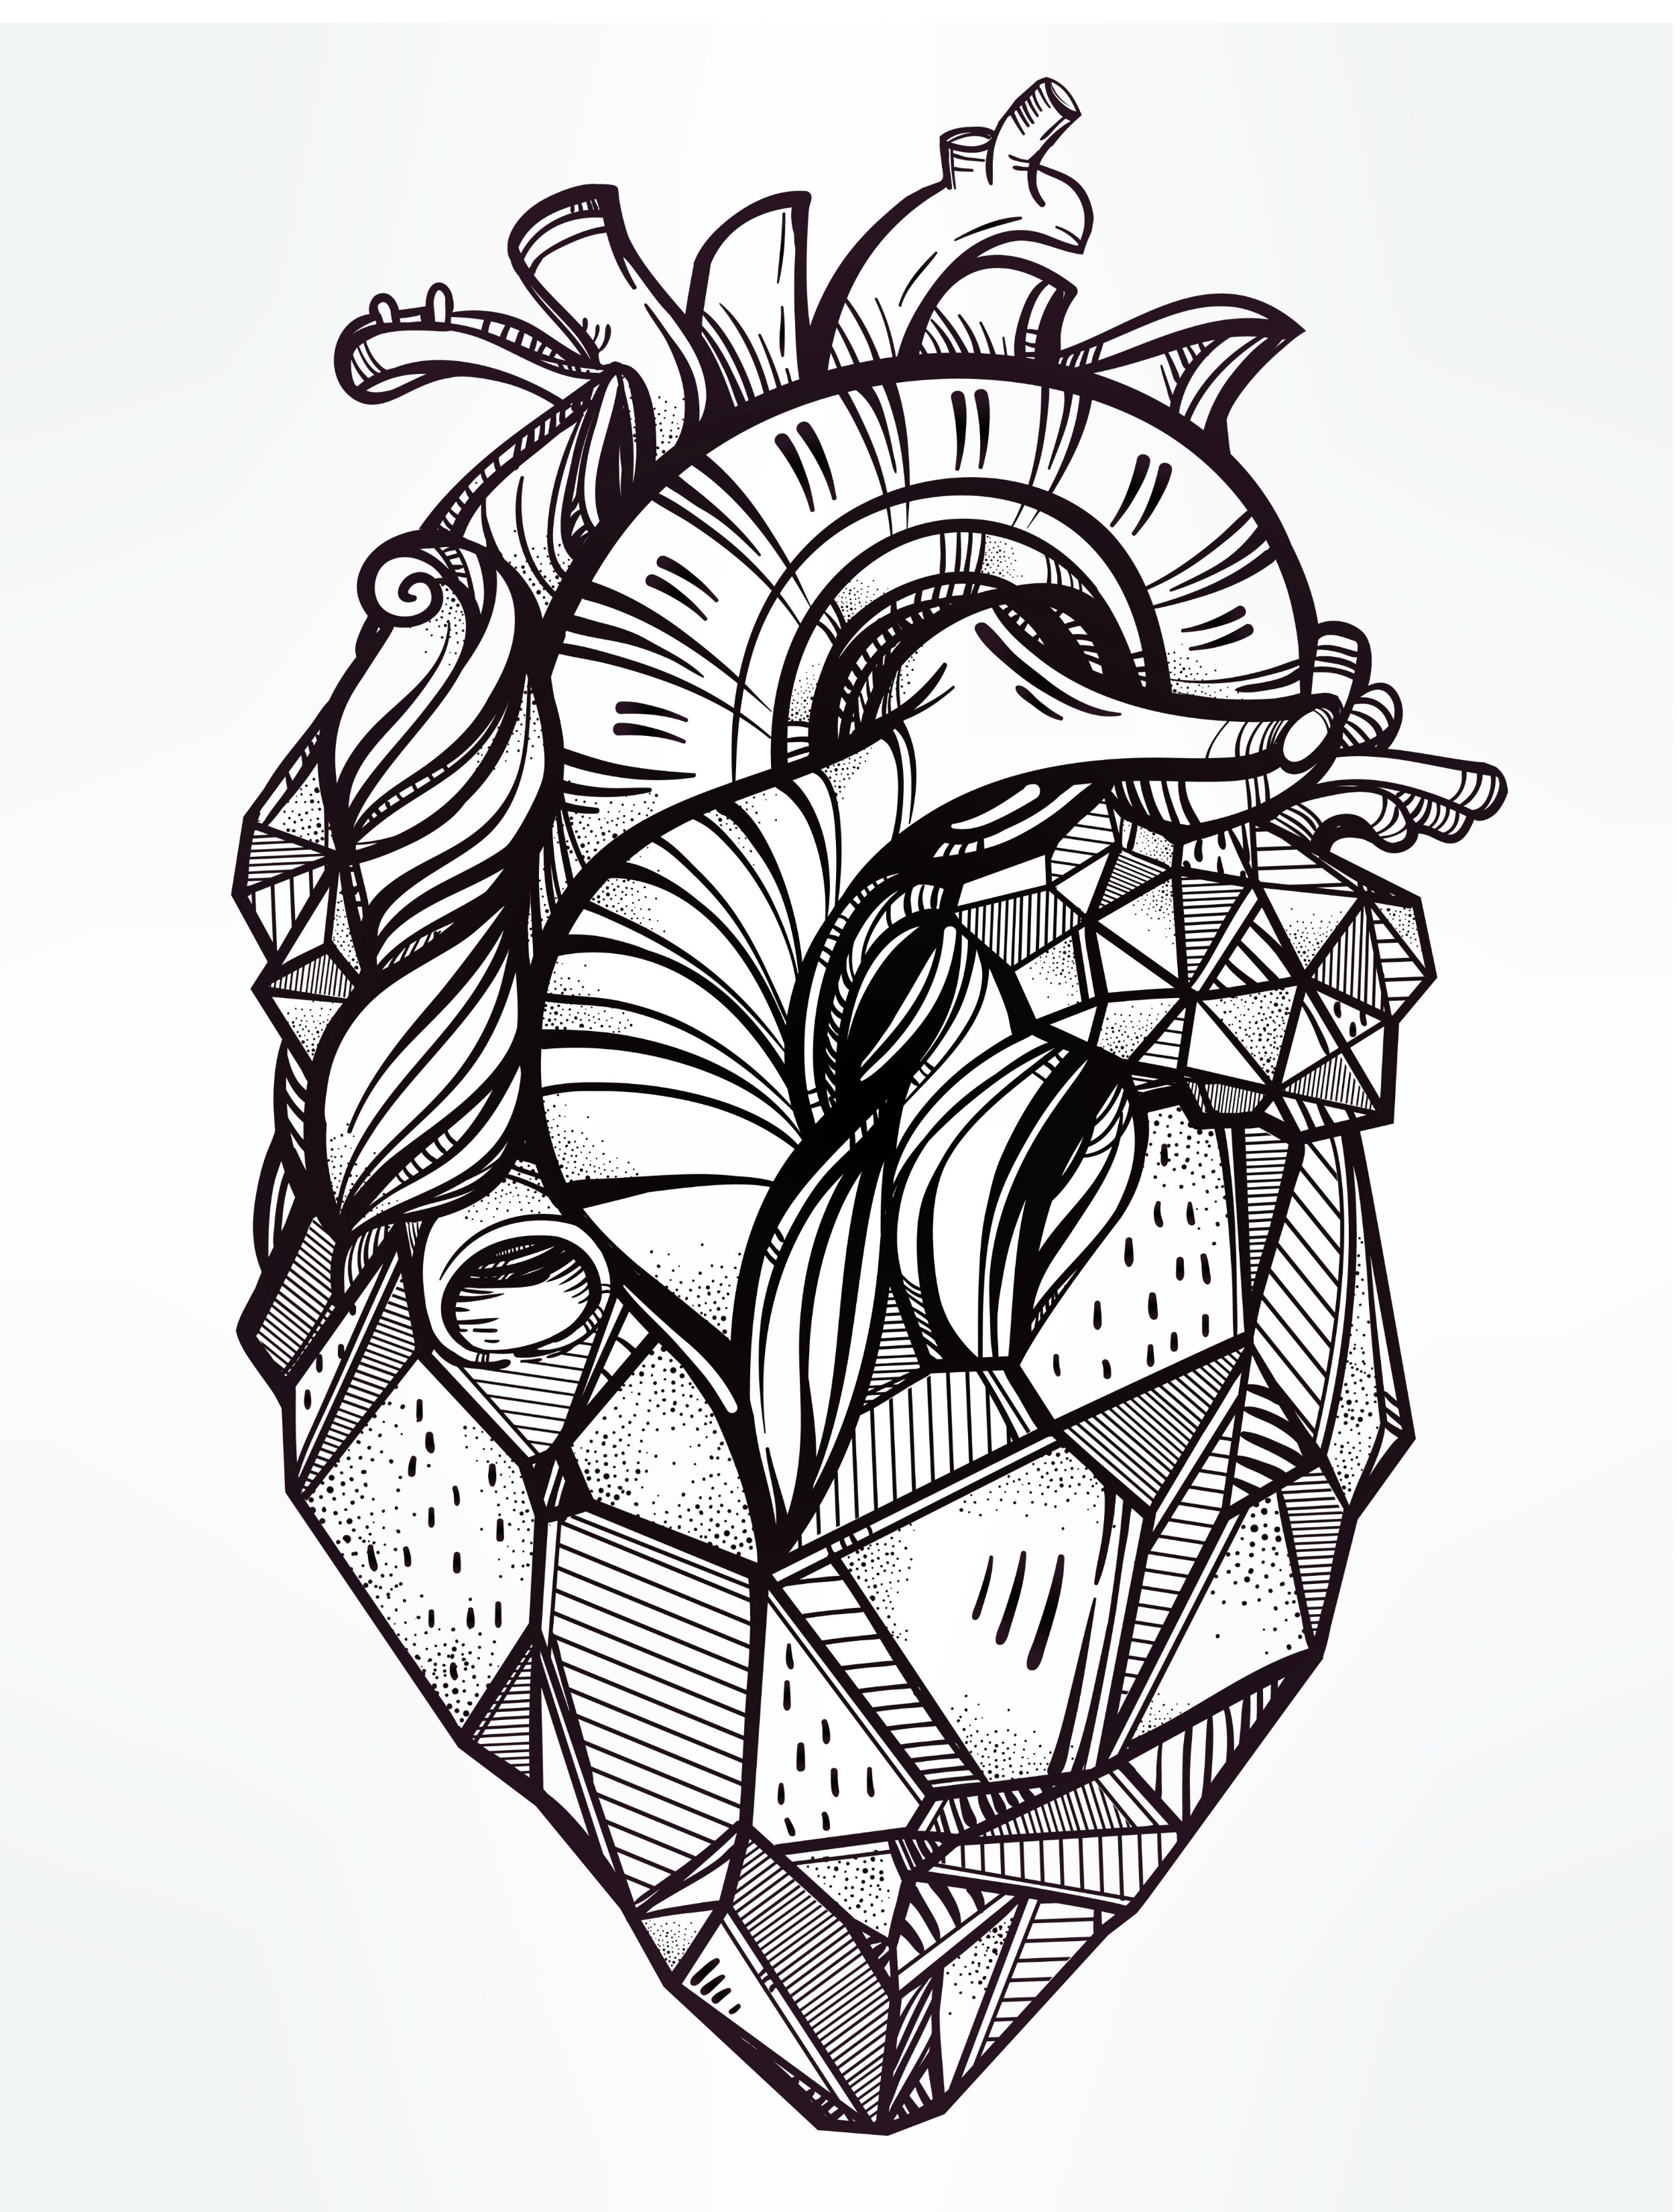 Coloring Pages For Adults To Print  20 Free Printable Valentines Adult Coloring Pages Nerdy